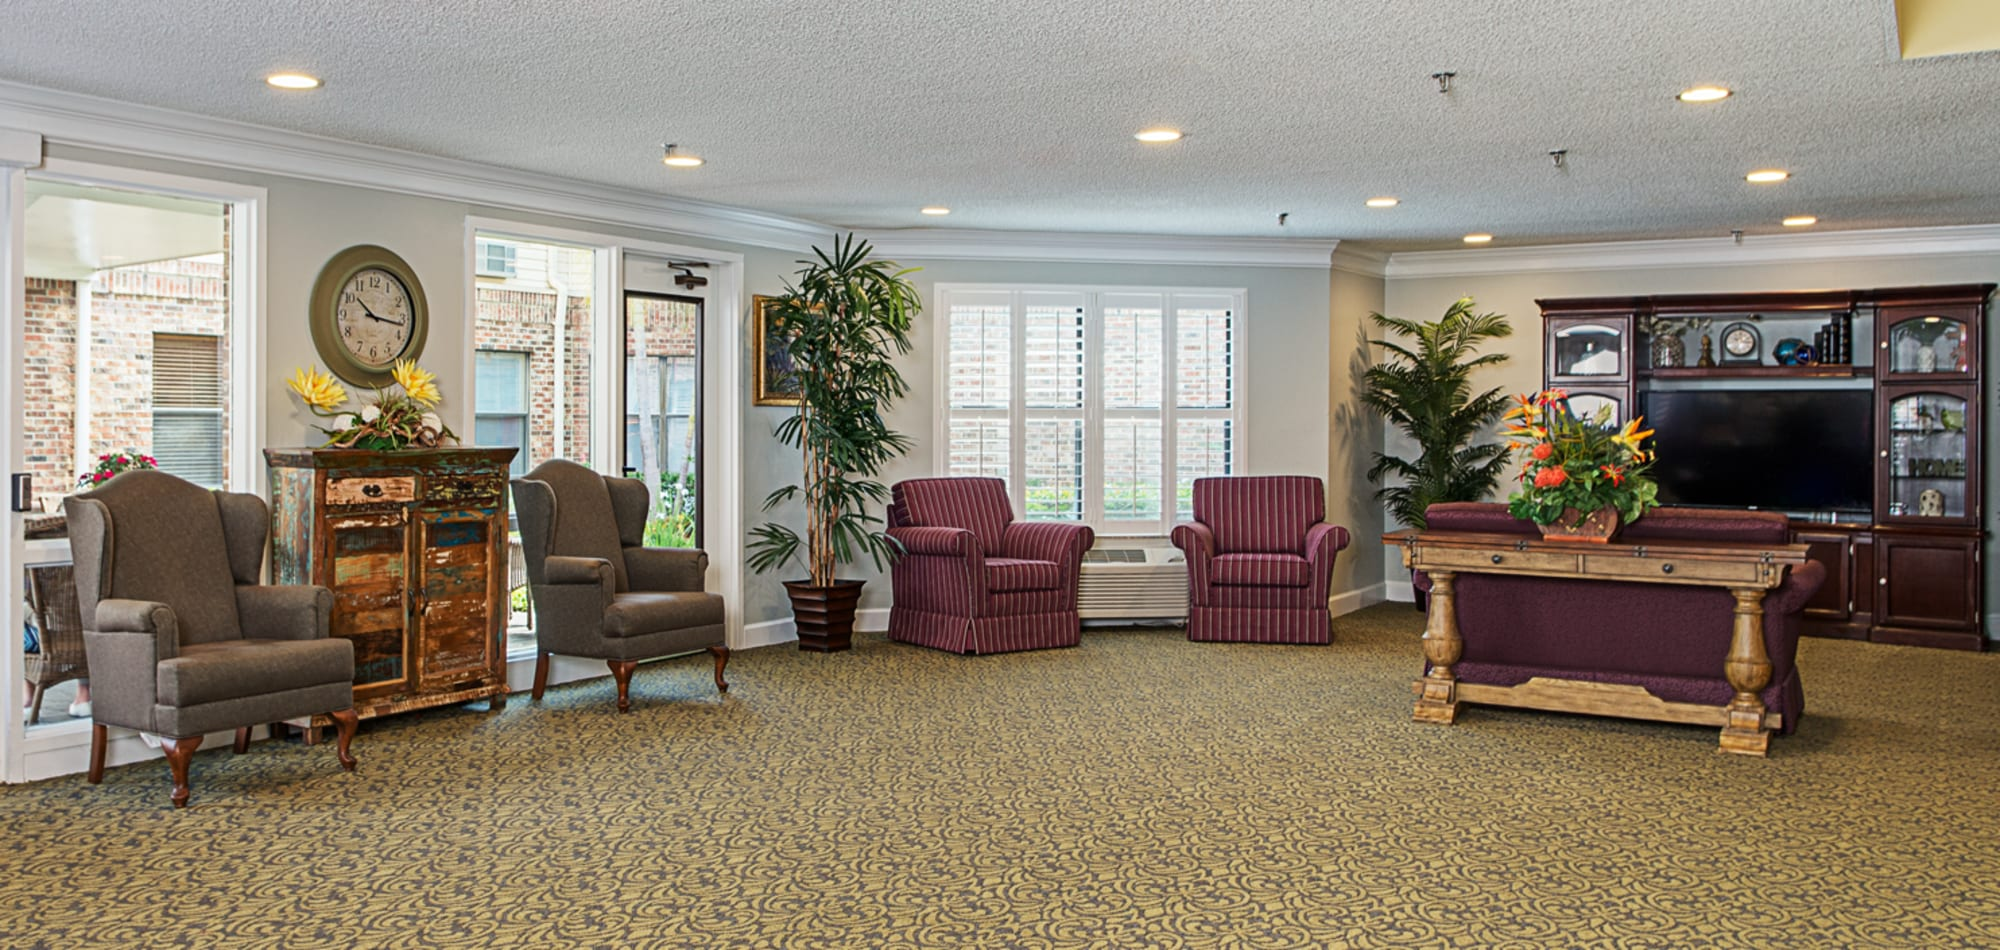 Grand Villa of Ormond Beach in Florida senior living